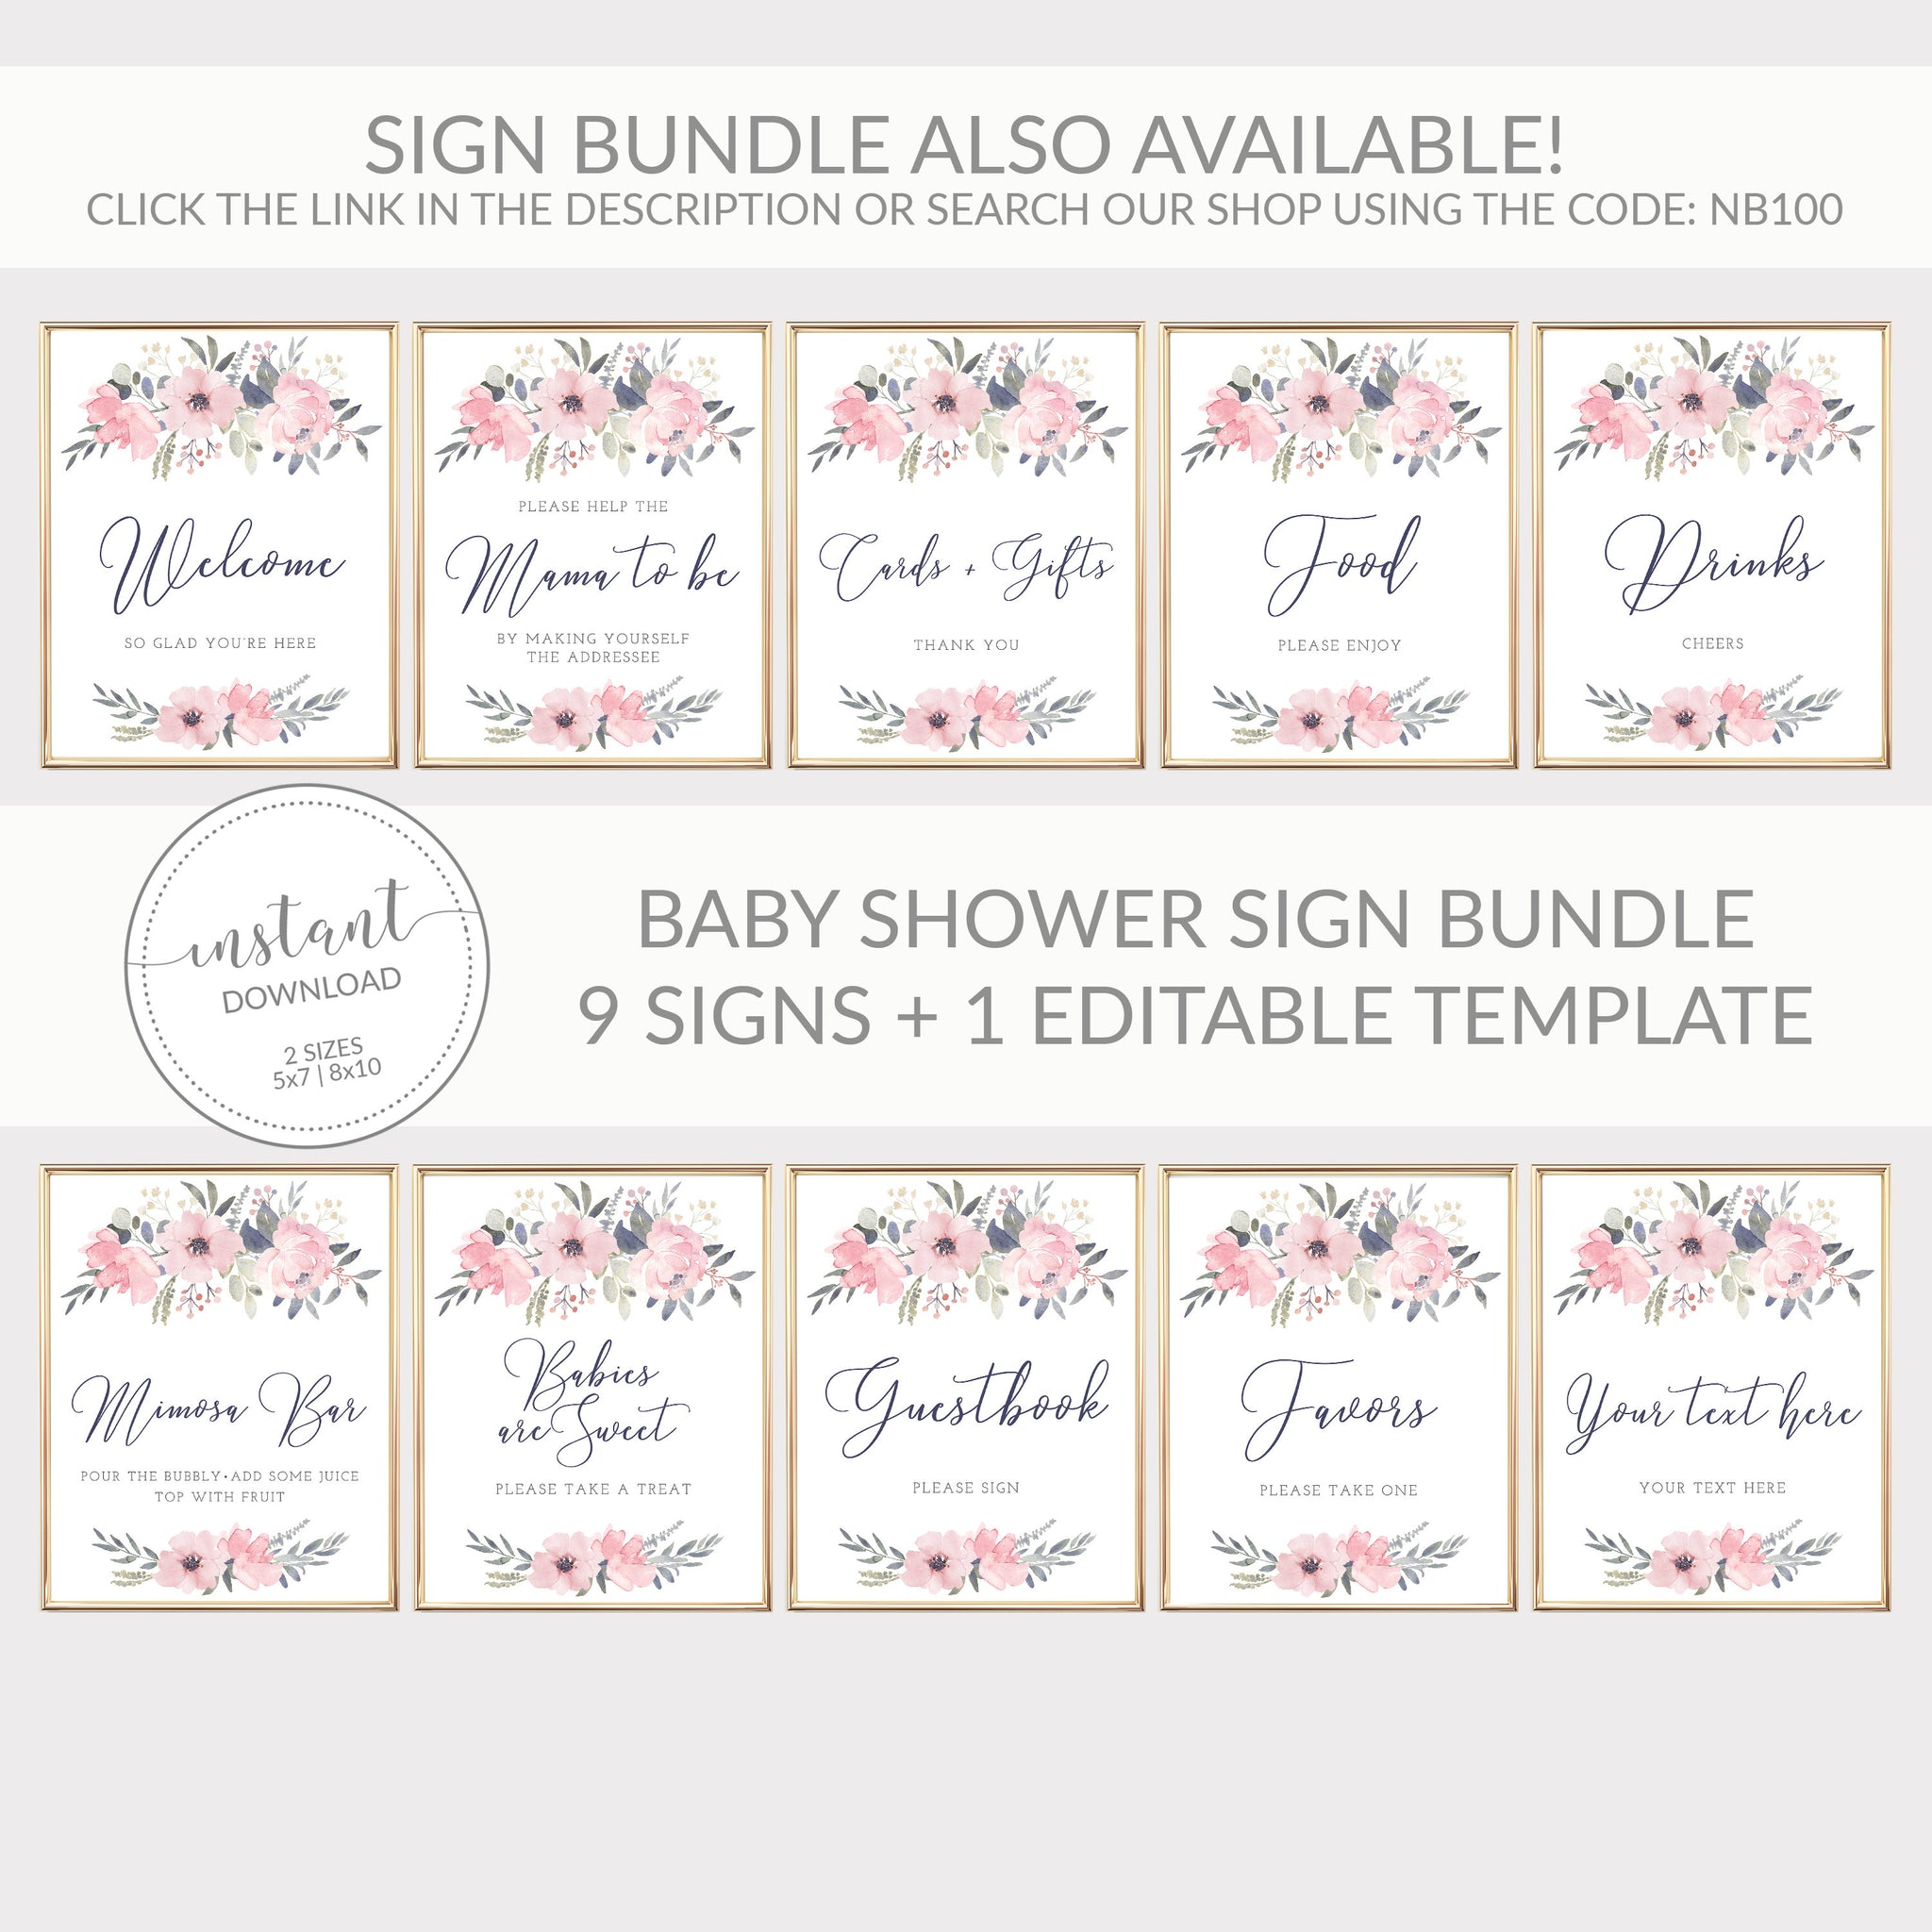 Navy and Blush Floral Printable Baby Shower Treat Sign, INSTANT DOWNLOAD, Dessert Table Floral Baby Shower Decorations and Supplies - NB100